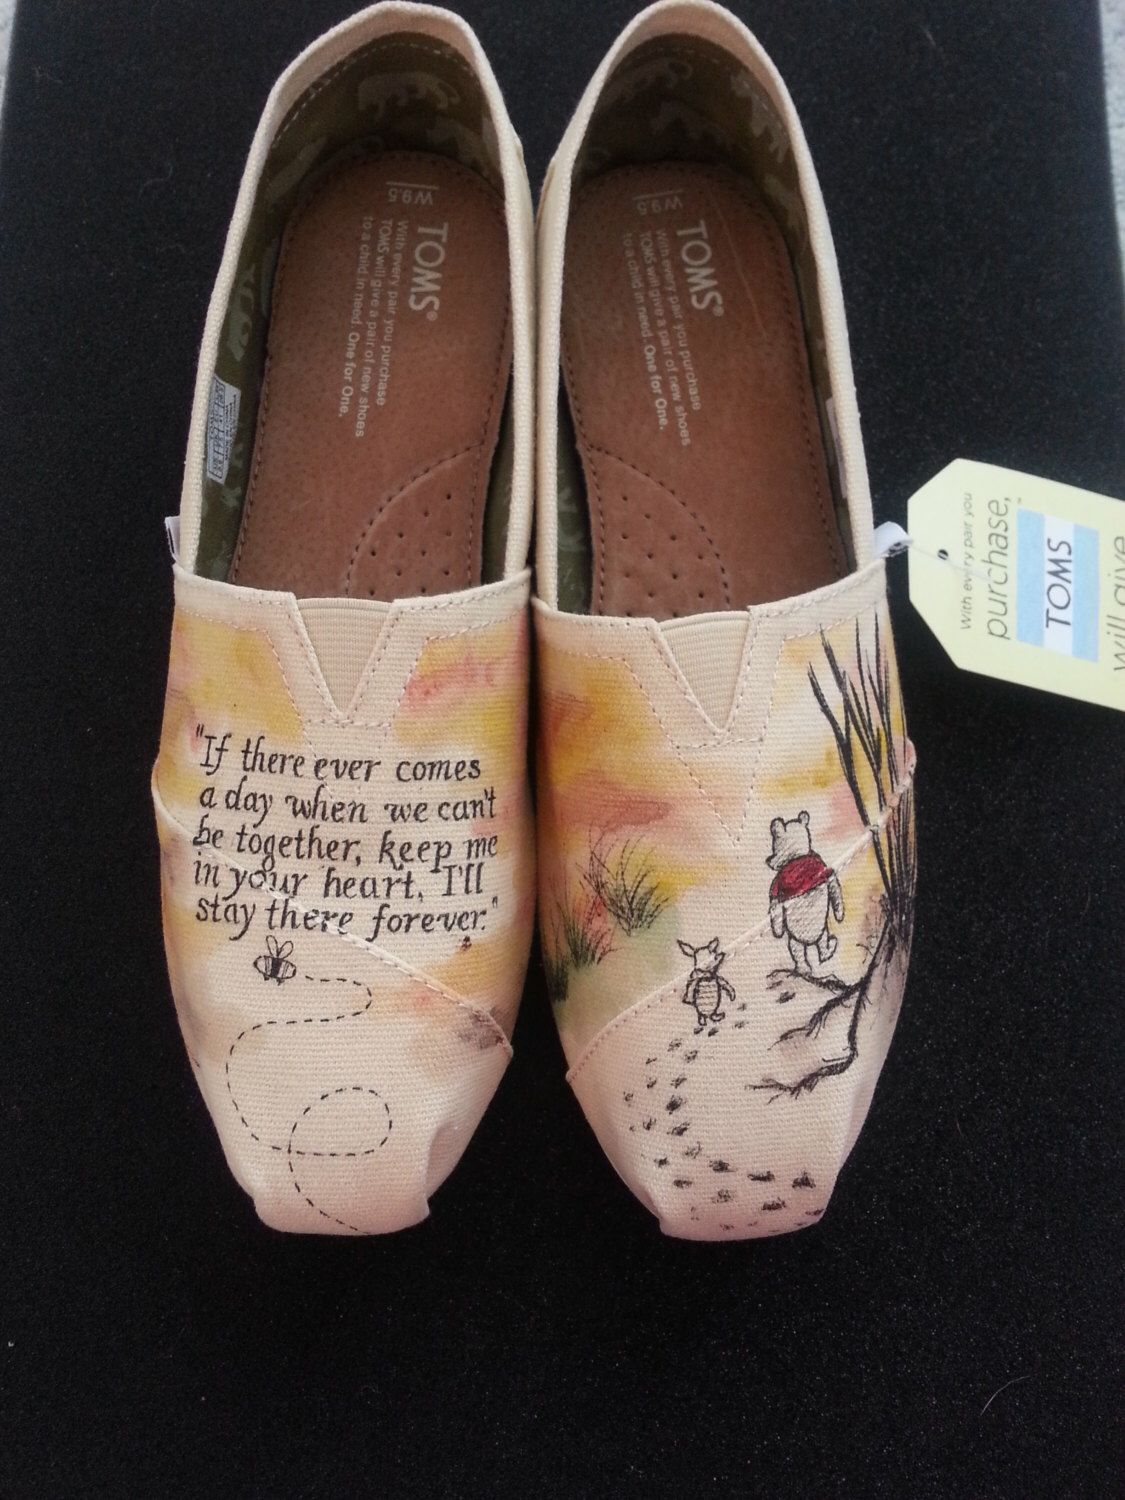 c86a0f51abb0 Vintage Winnie the Pooh and Piglet Custom Hand Painted Wedding Shoes by  Brinkadoodle on Etsy https